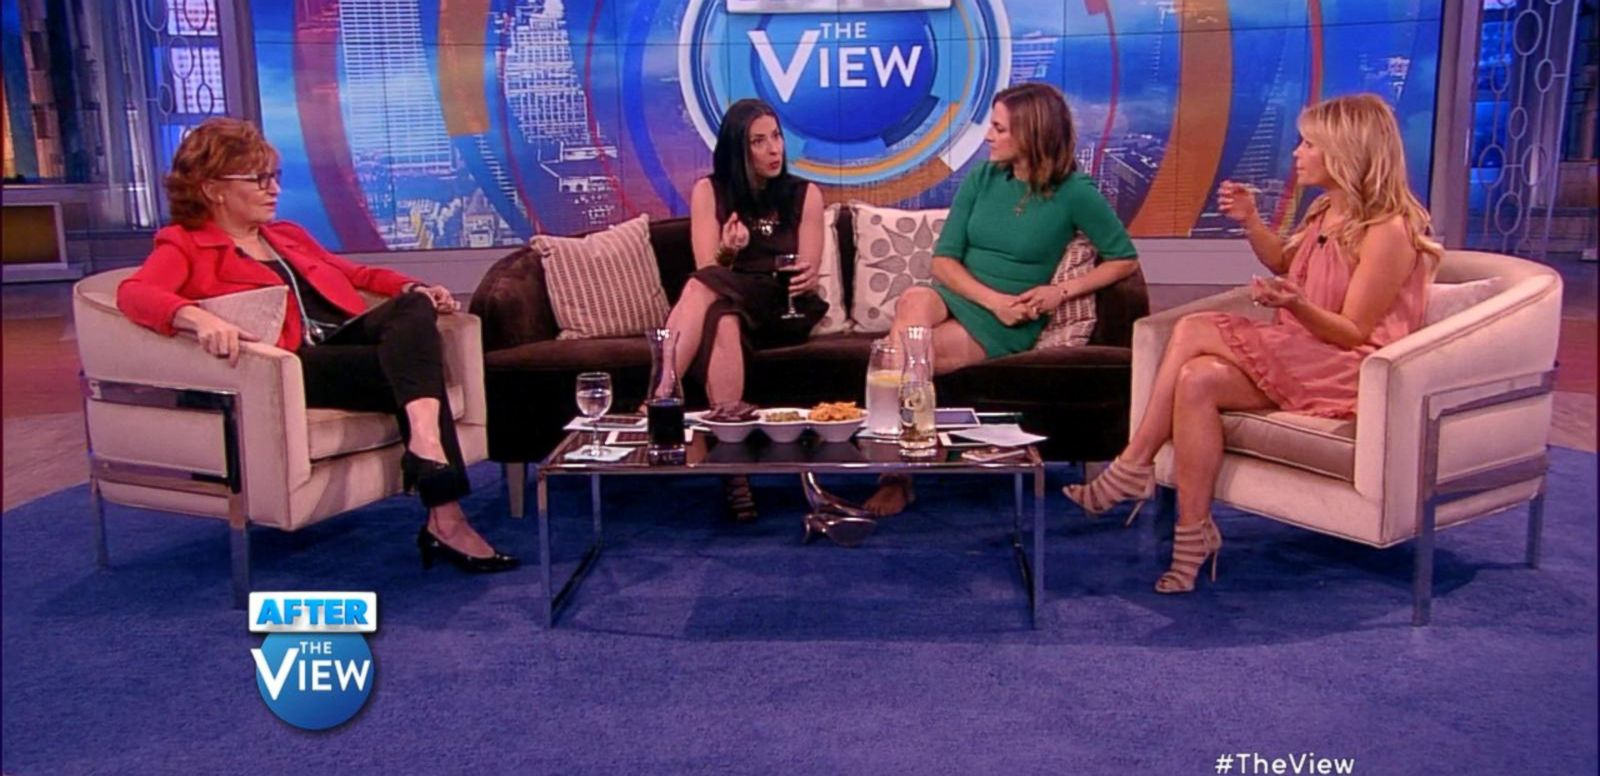 VIDEO: 'After The View': May 26, 2016